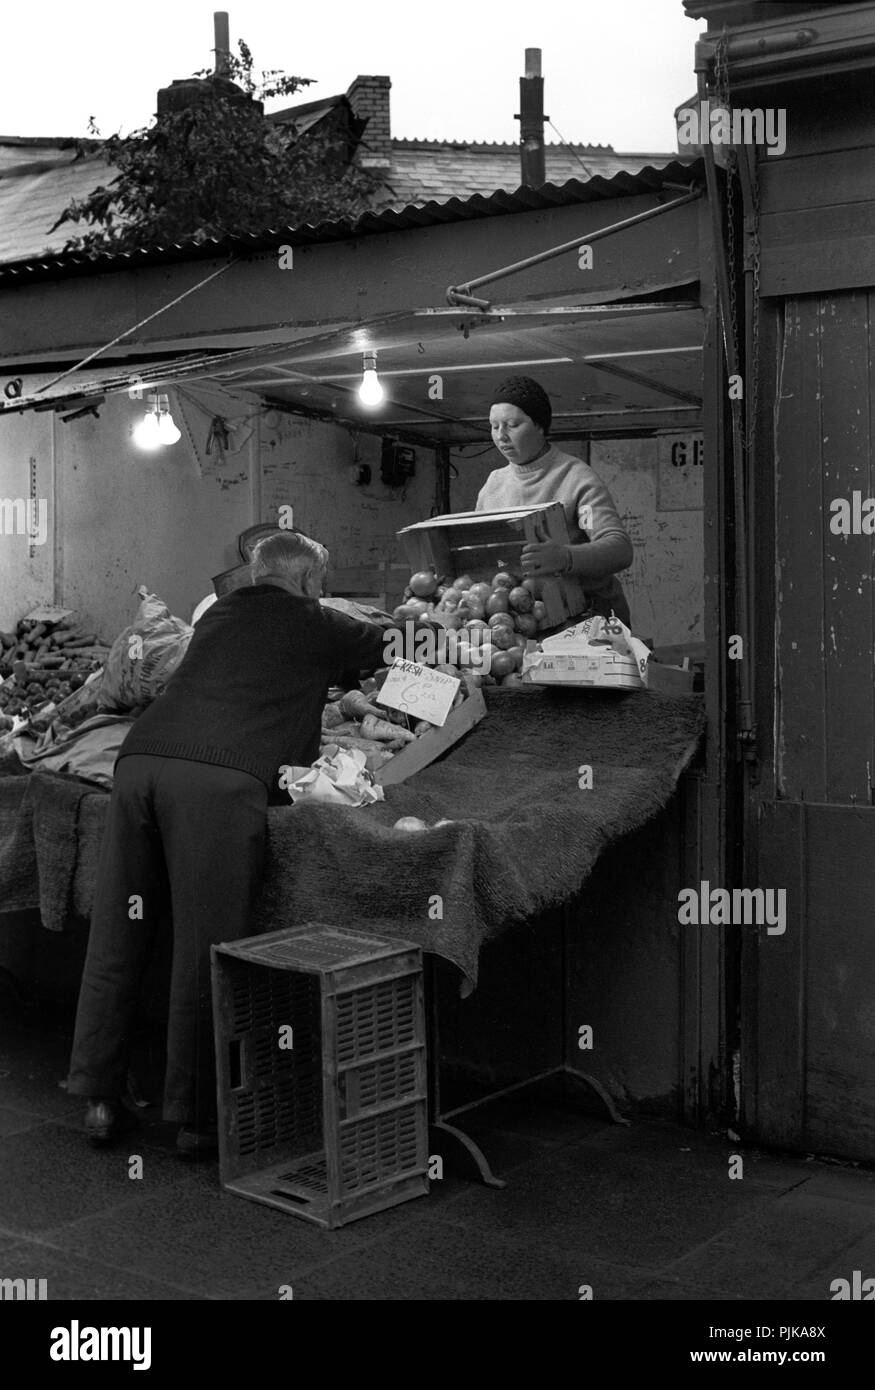 Wales, Cardiff, city centre, The Hayes Outdoor Market, 1979, fruit and vegetable stall setting up early morning - Stock Image